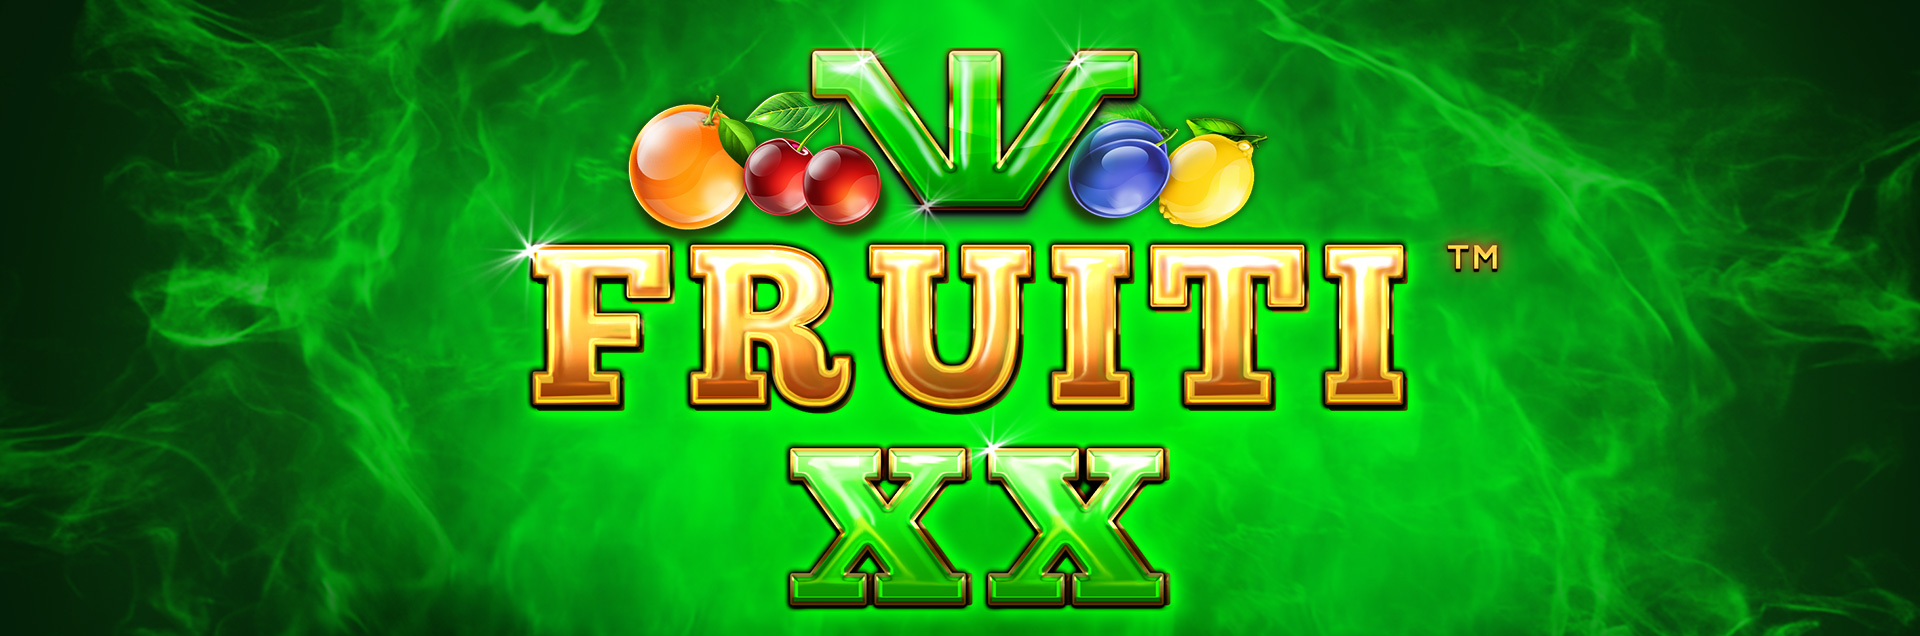 FruitiXX Header Game Image Game